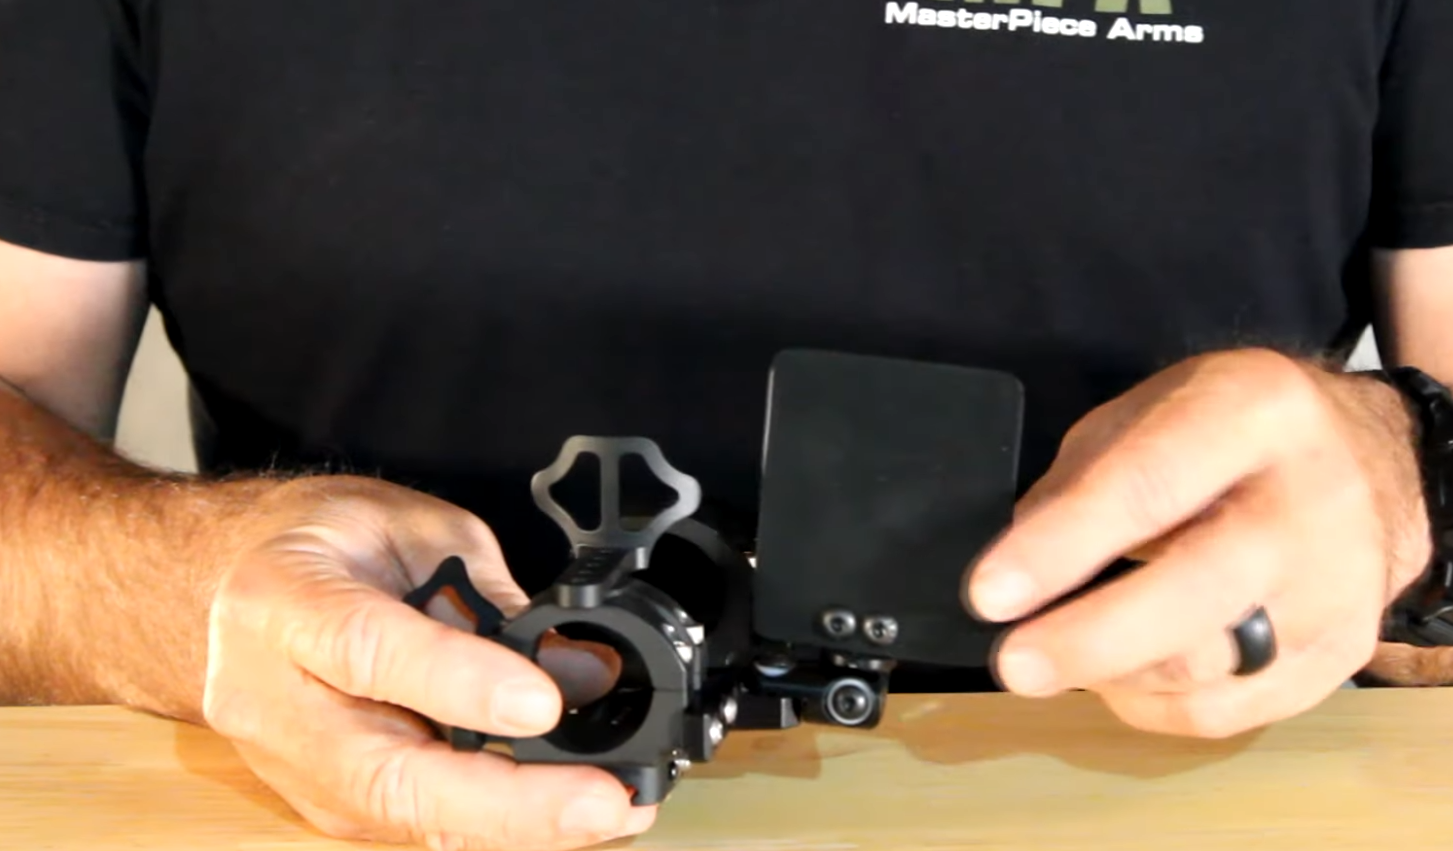 Masterpiece Arms Introduces New Enhancements for the Bolt Action Mount